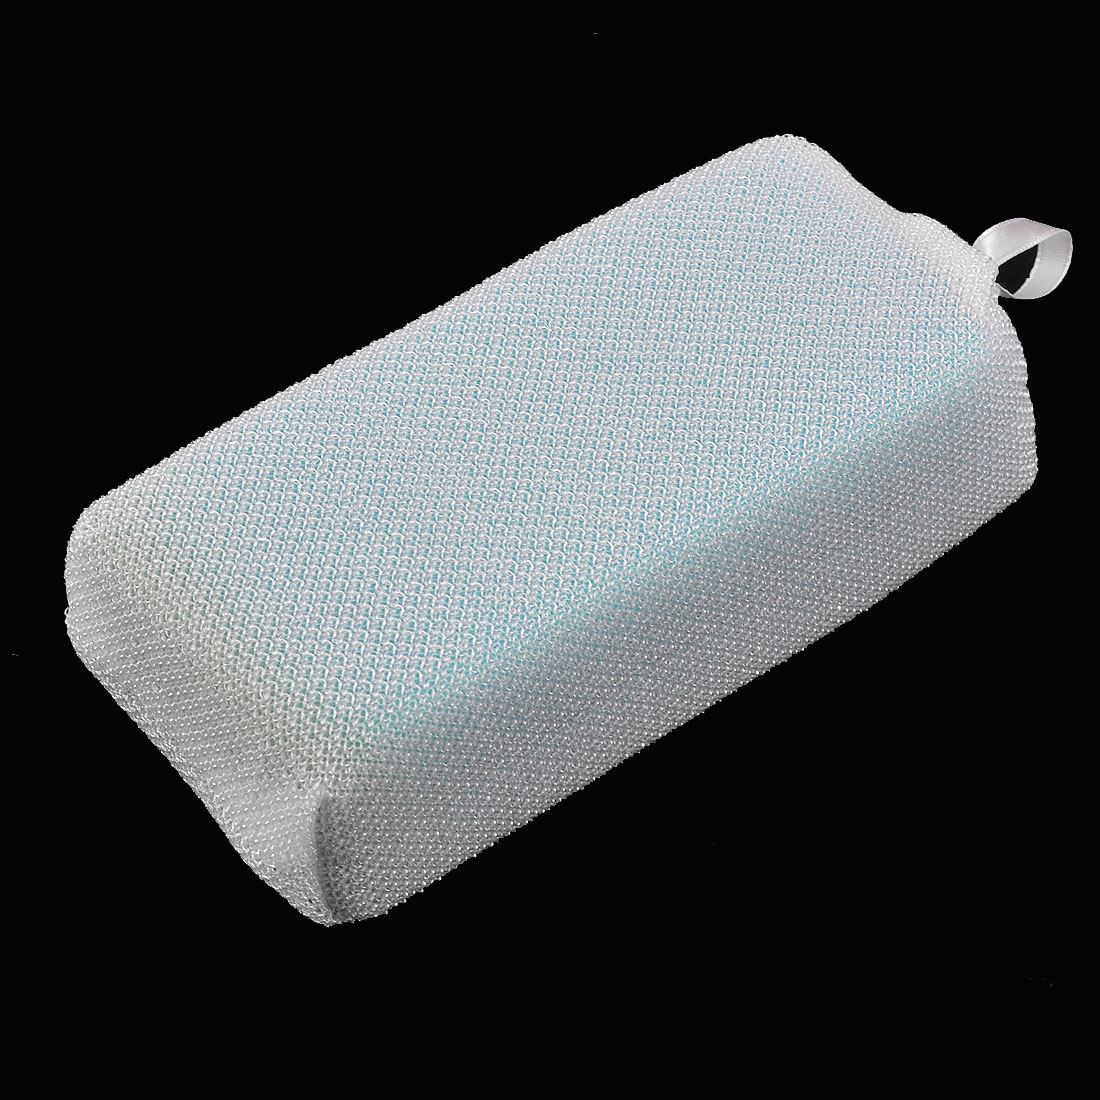 Kitchen Absorbent White Blue Rectangle Mesh Sponge Pad